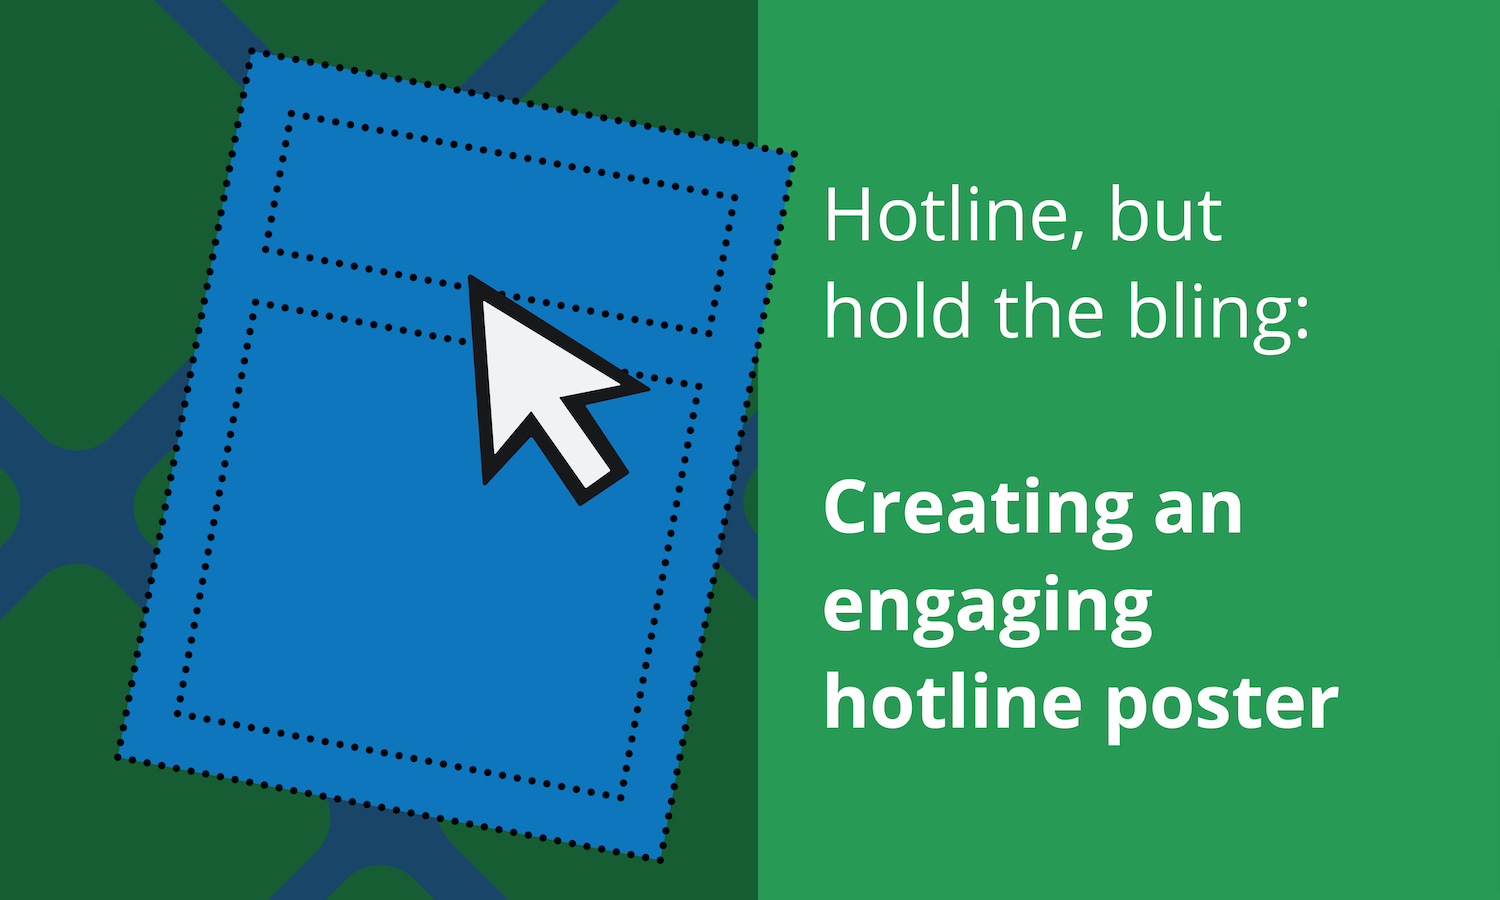 Hotline, but hold the bling: Creating an engaging hotline poster.